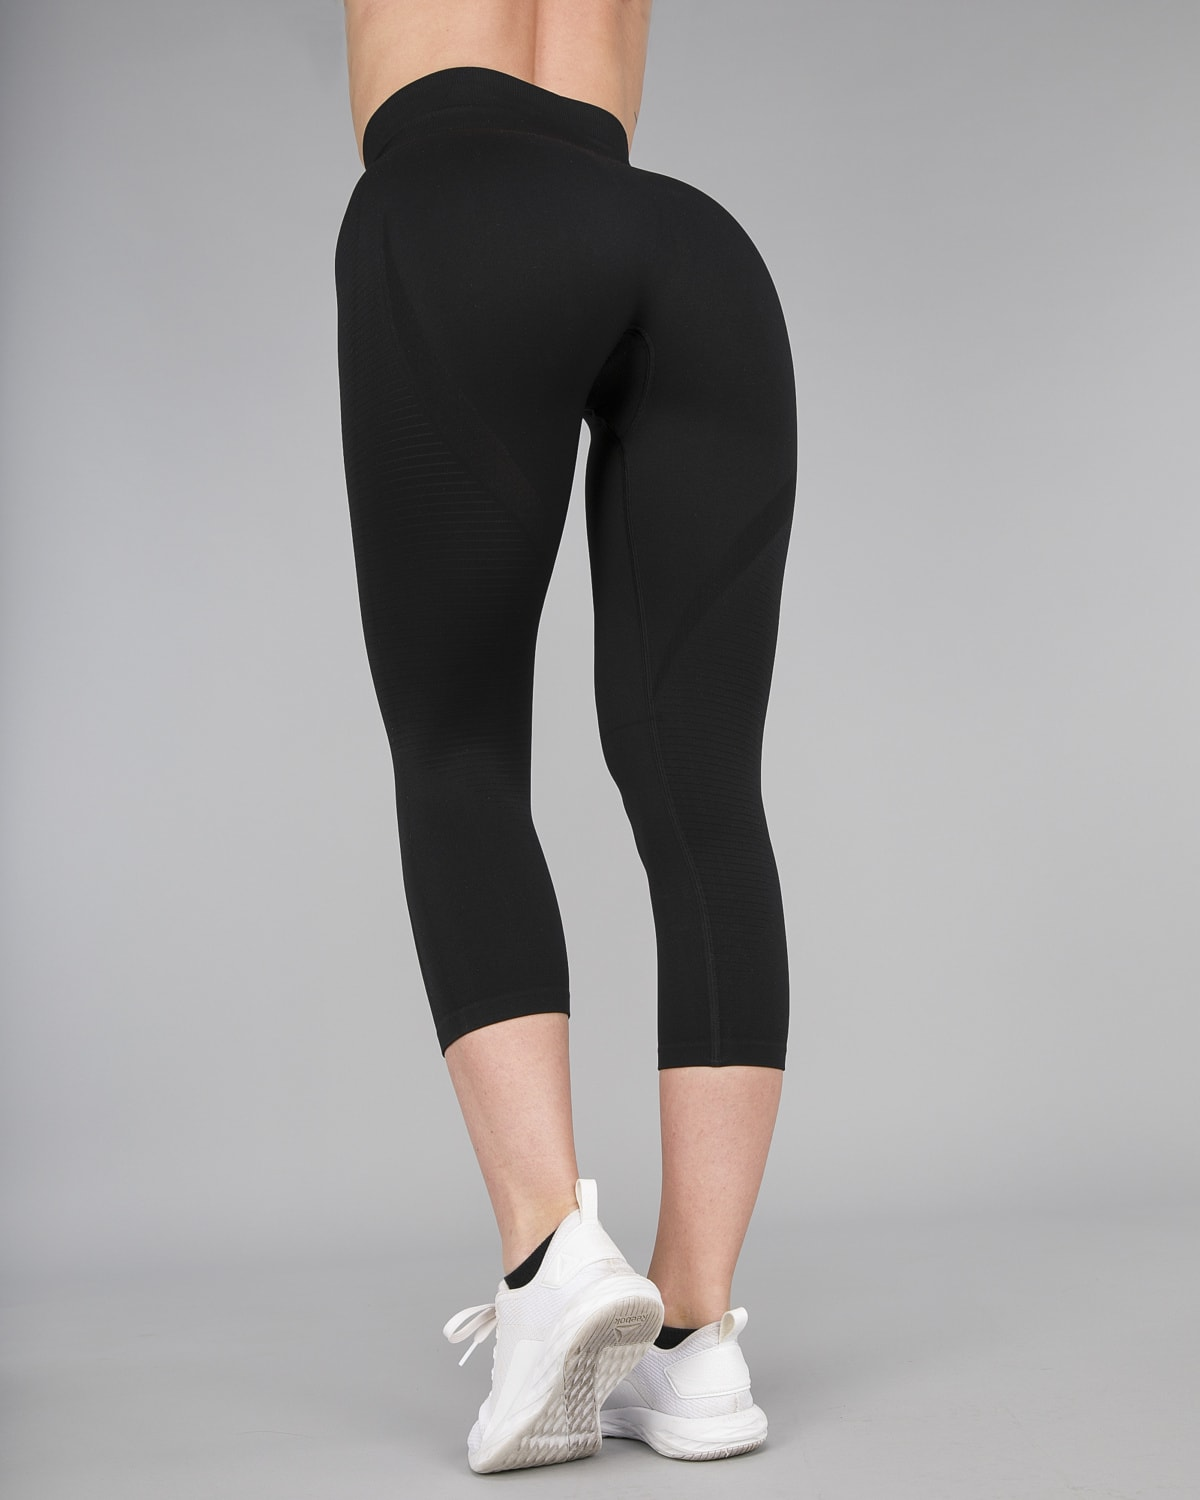 FAMME – Vortex Leggings 7:8 – Black1